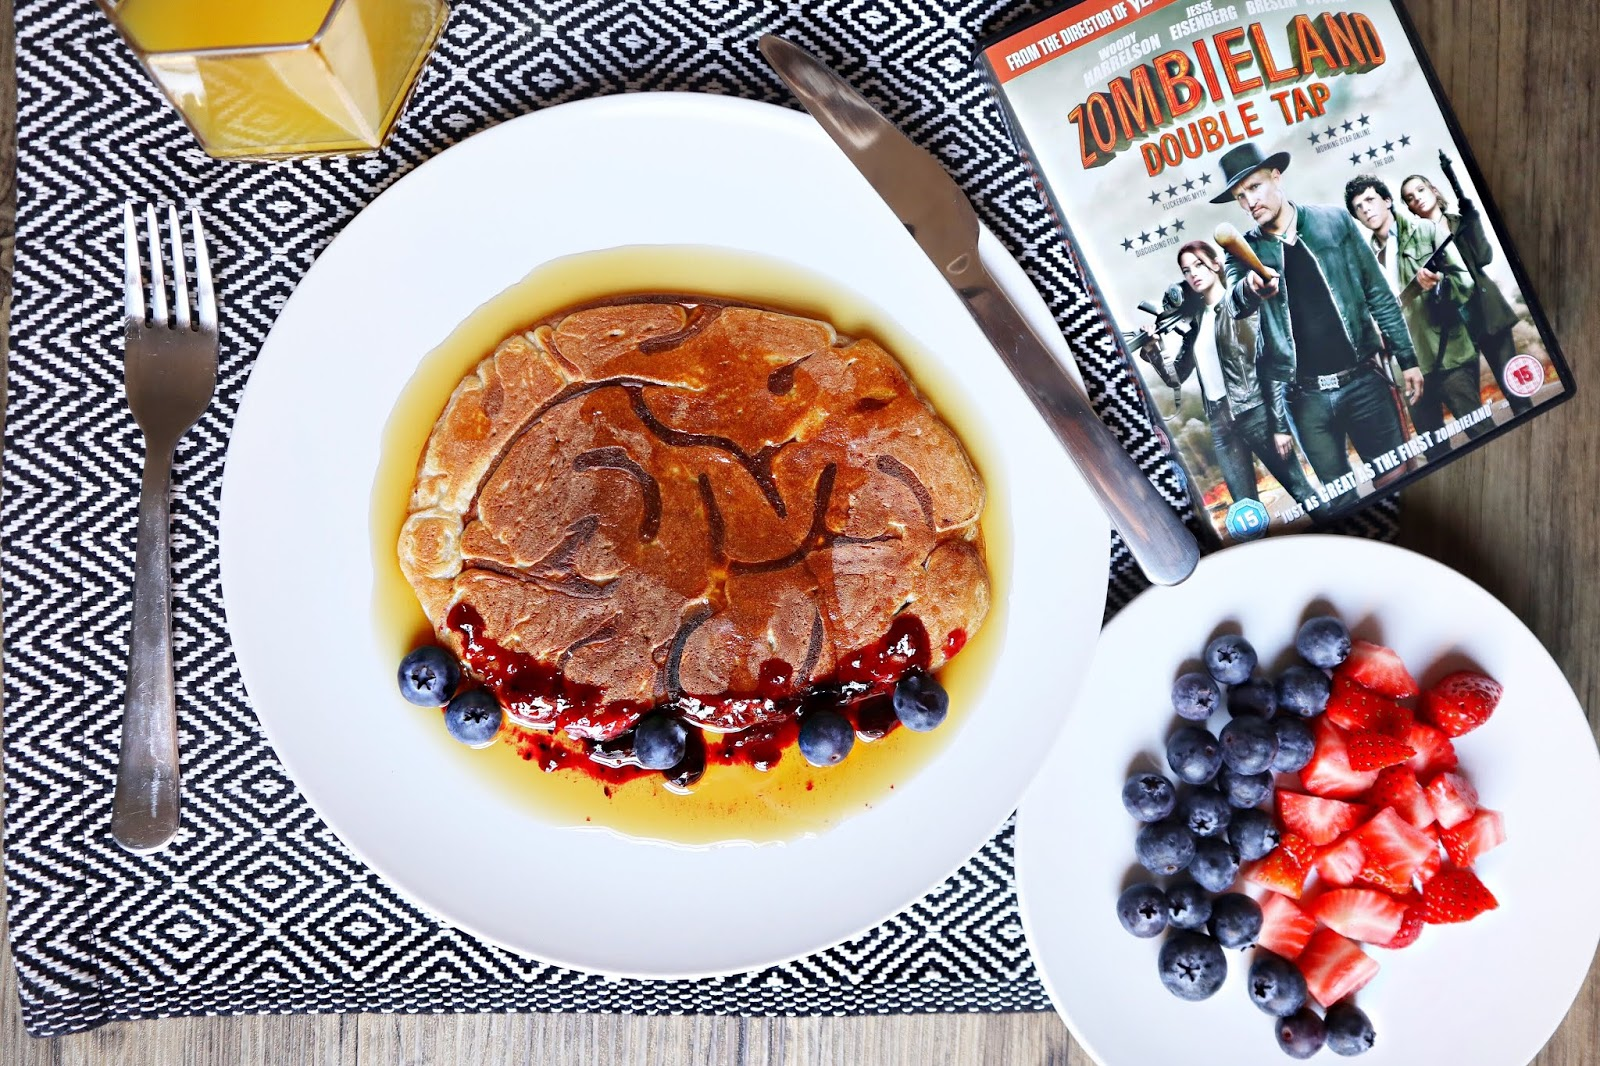 Lifestyle Review: Making Zombie Pancakes with Zombieland: Double Tap